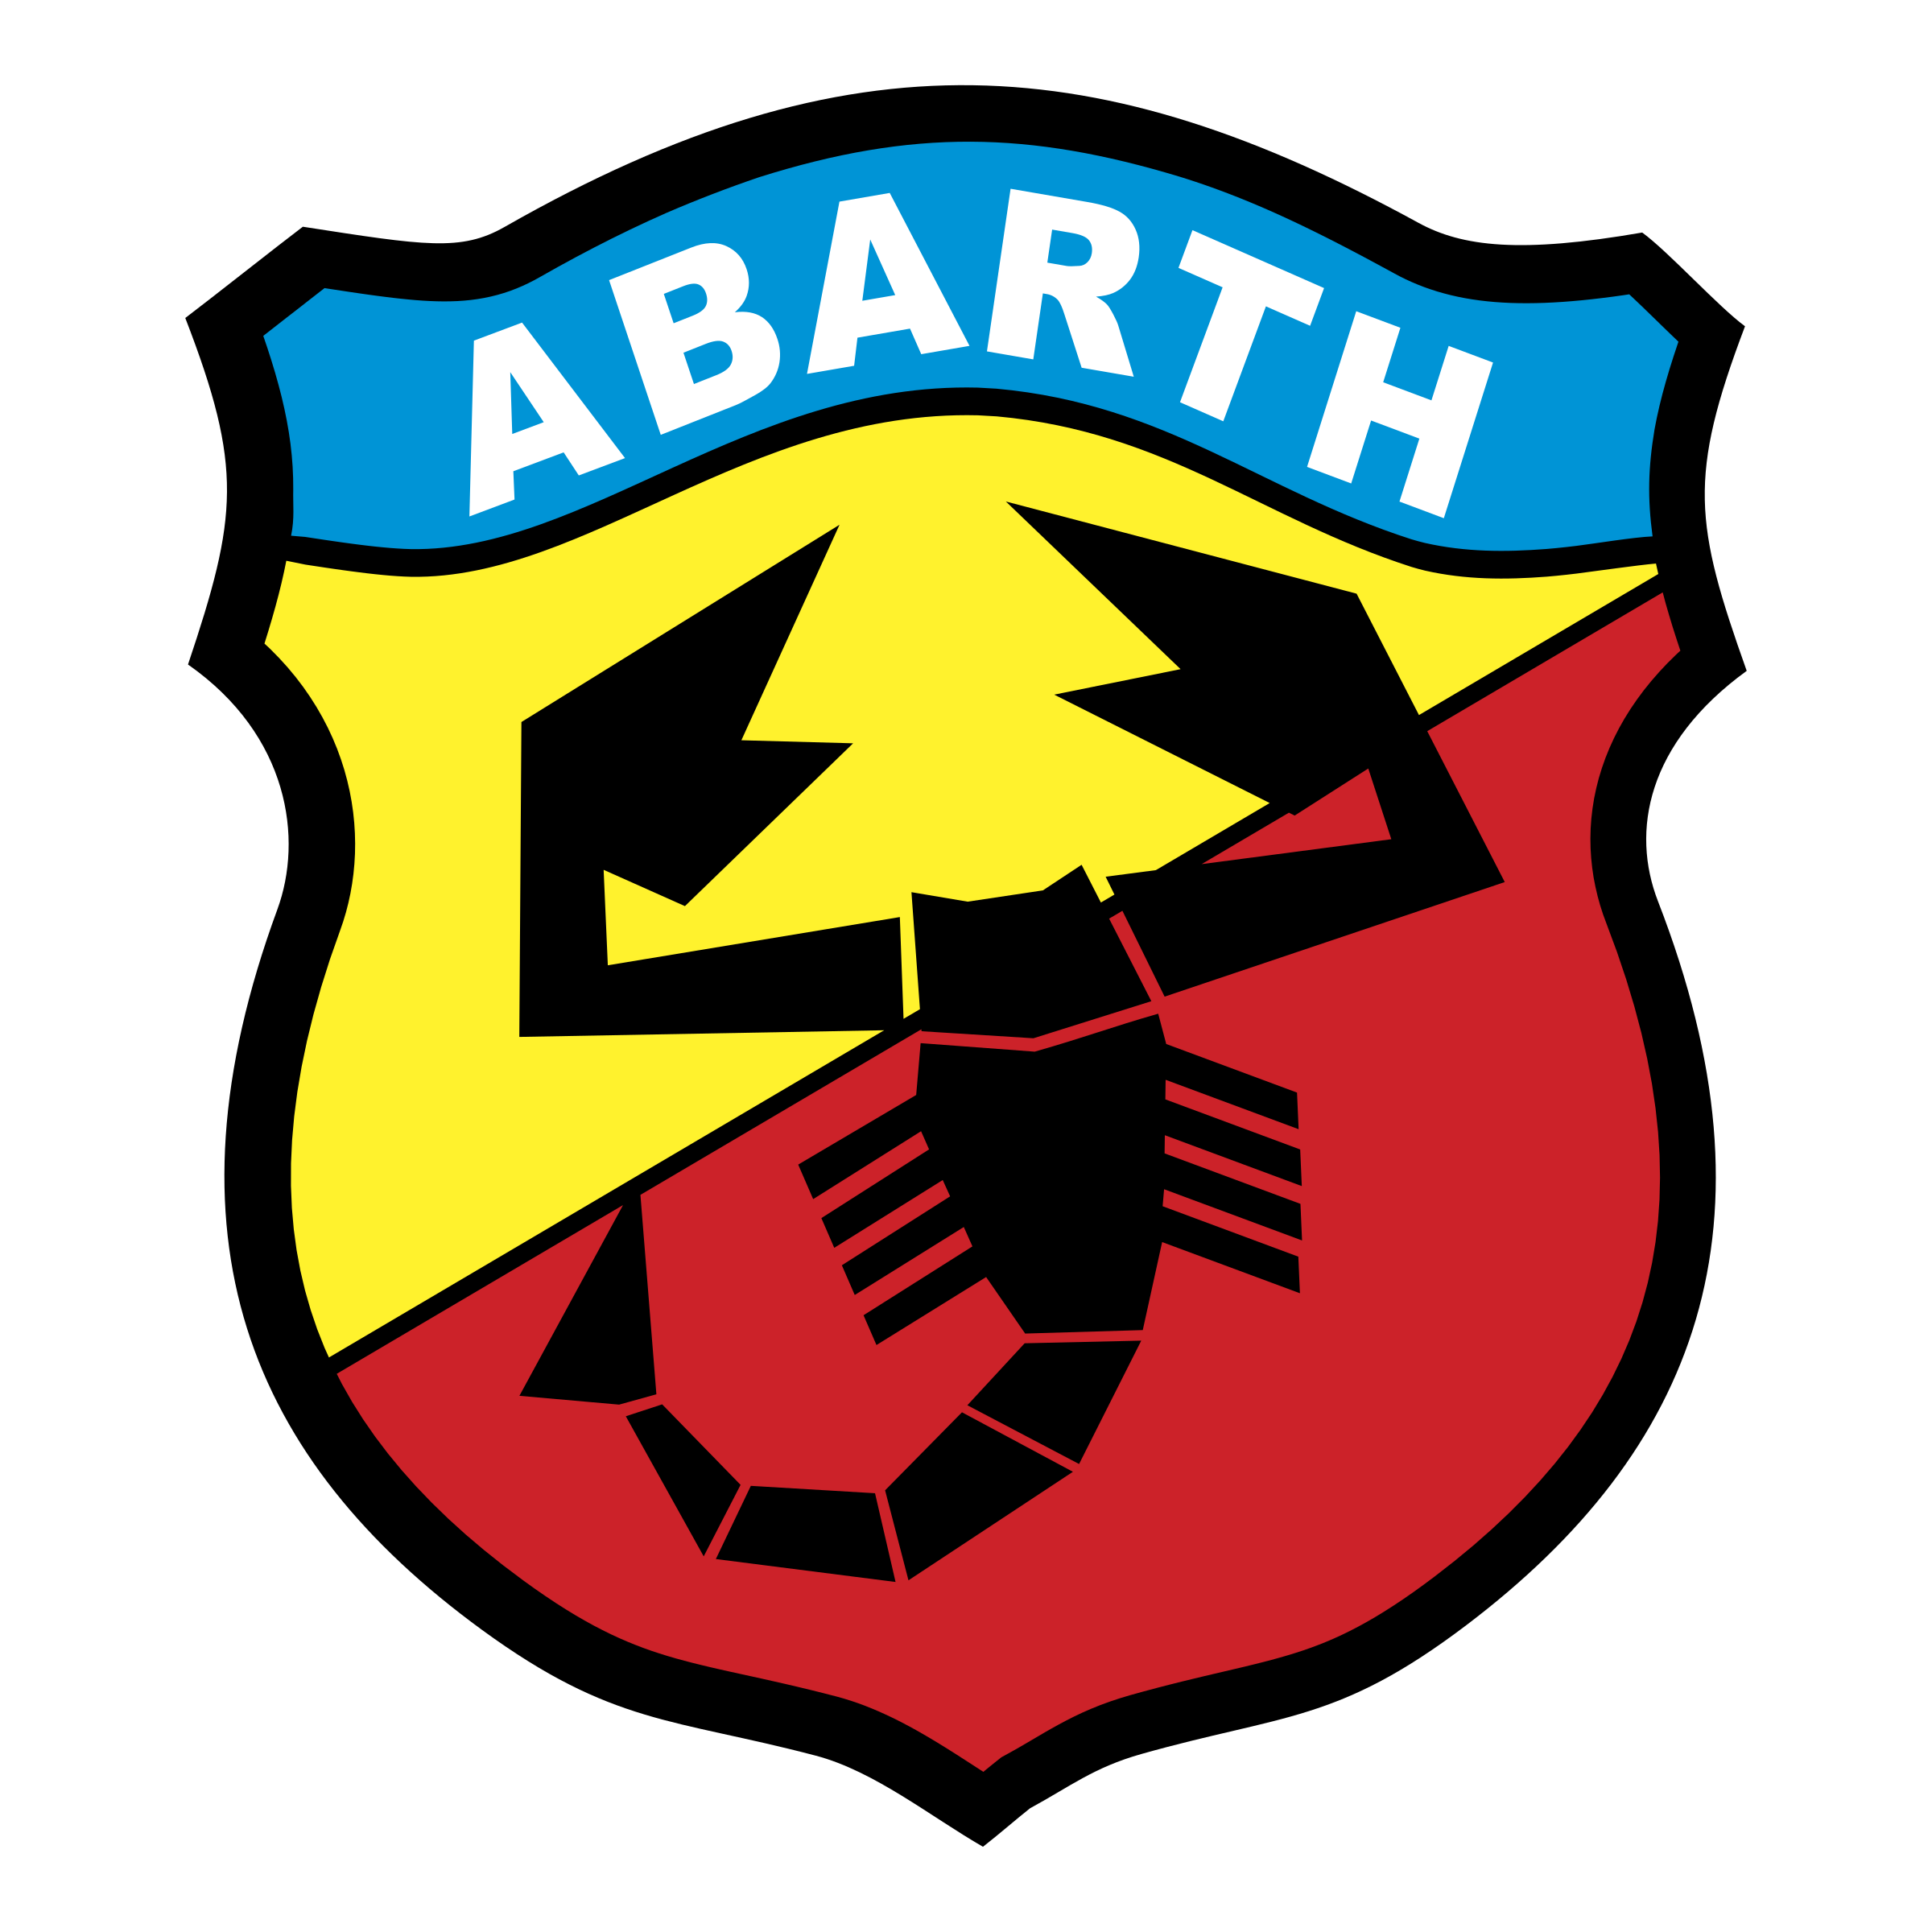 Abarth Logo PNG Transparent & SVG Vector - Freebie Supply